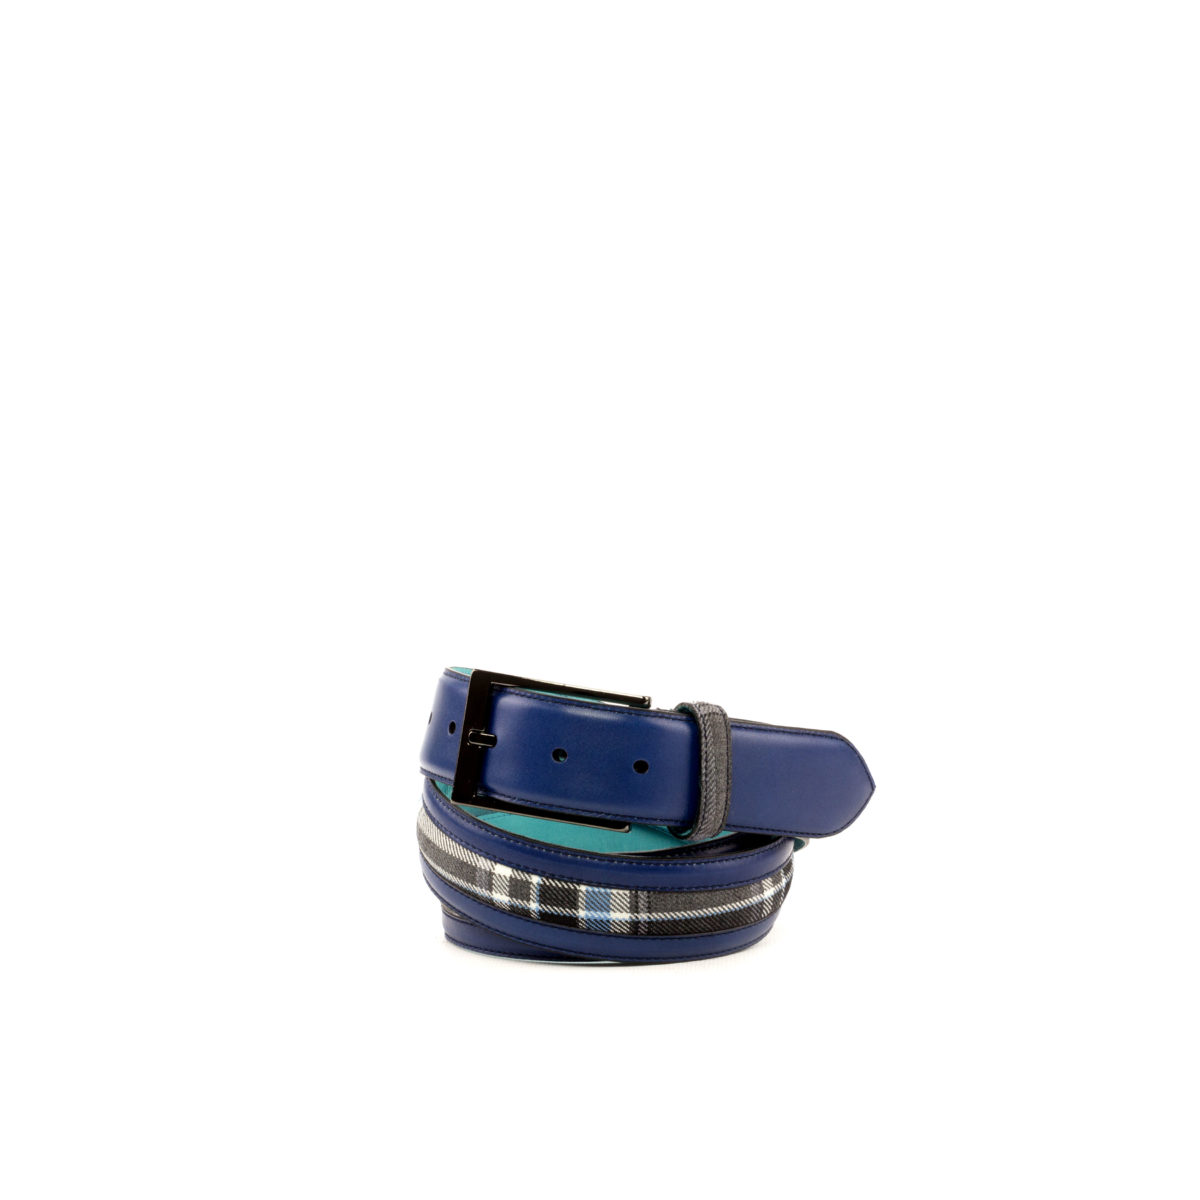 Side view of model Baxter, navy blue painted calf, plaid fabric, tuquoise nubuck, graphite buckle Golf BespokeShoes